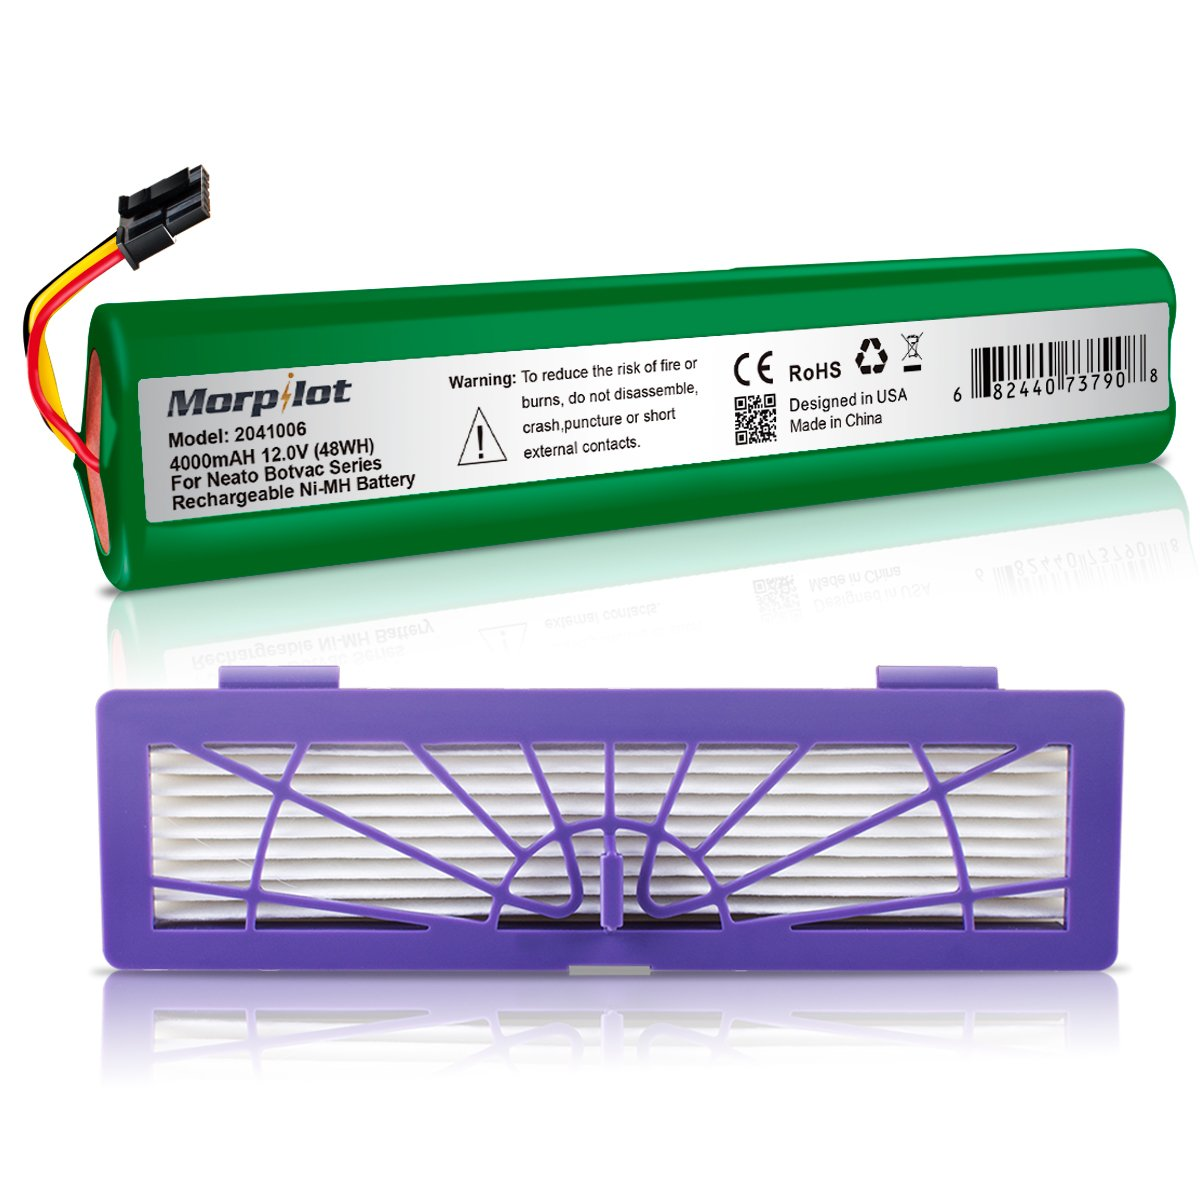 Morpilot 4000mAh Extended NiMh Battery with HEPA Fliter for Neato Botvac Series Robots Botvac 70e, 75, 80, 85 Robotic Vacuum 945-0129 945-0174(Not compatible with Neato D3 D5 D7) 2041010